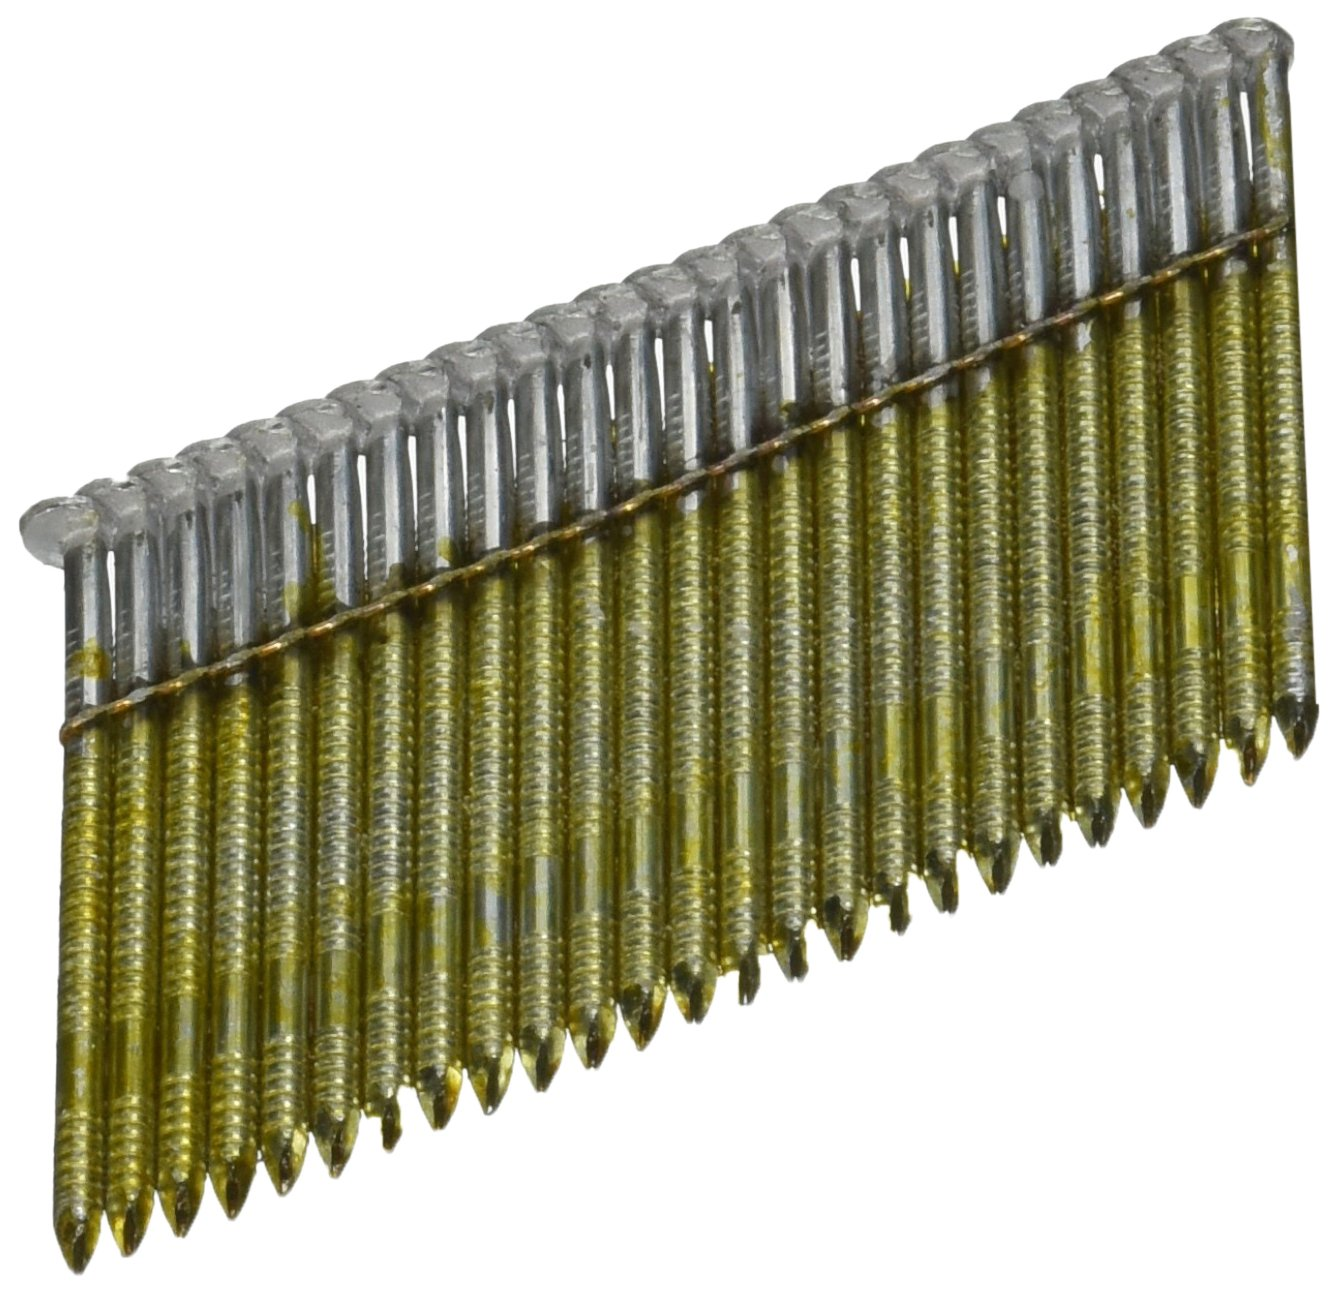 BOSTITCH S8DRGAL-FH 28 Degree 2-3/8-Inch by .120-Inch Wire Weld ...